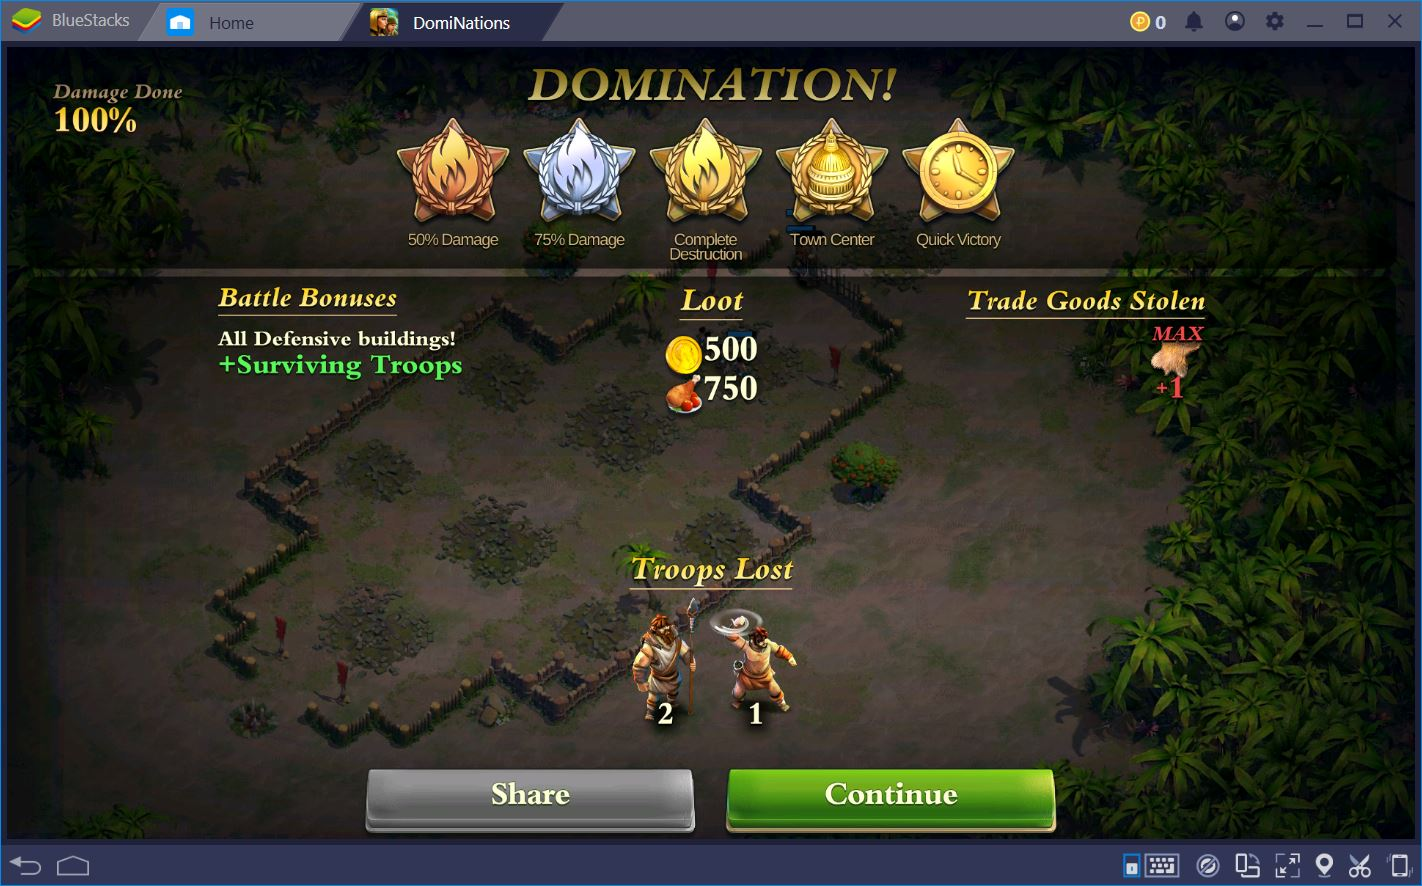 DomiNations: Conquer the World with BlueStacks